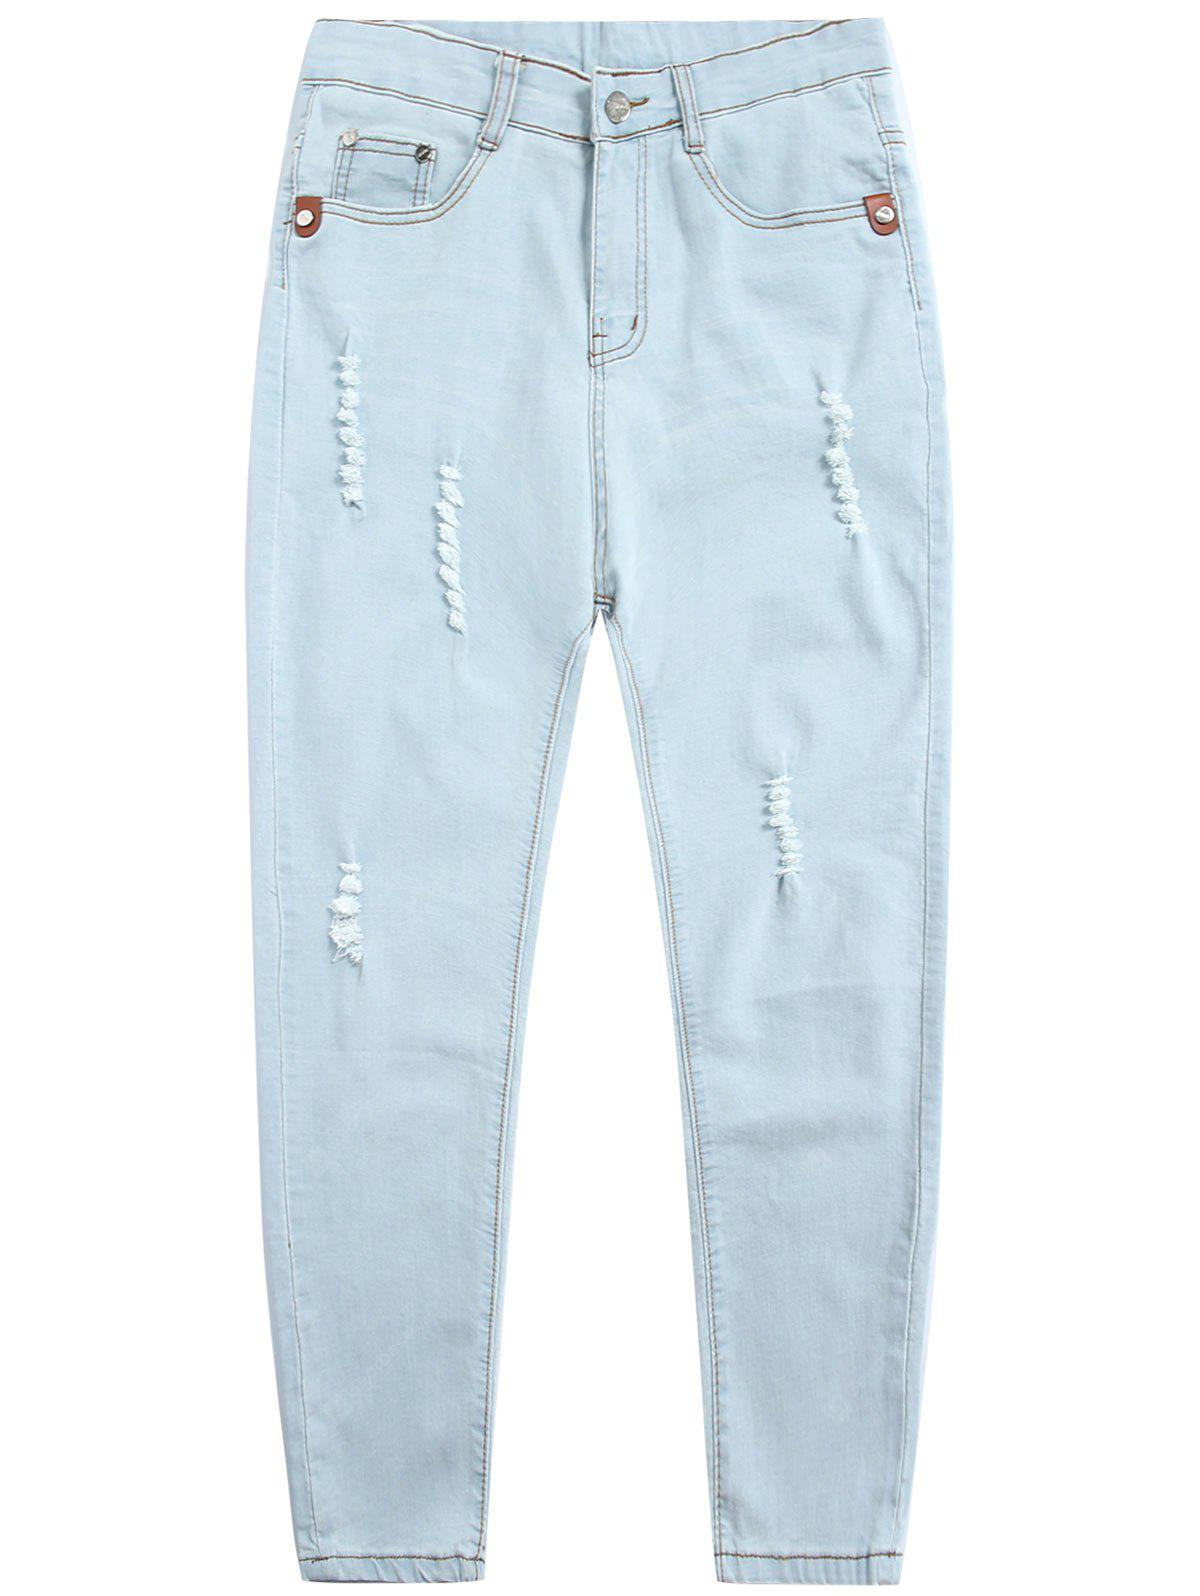 Light Wash Zip Fly Distressed Jeans